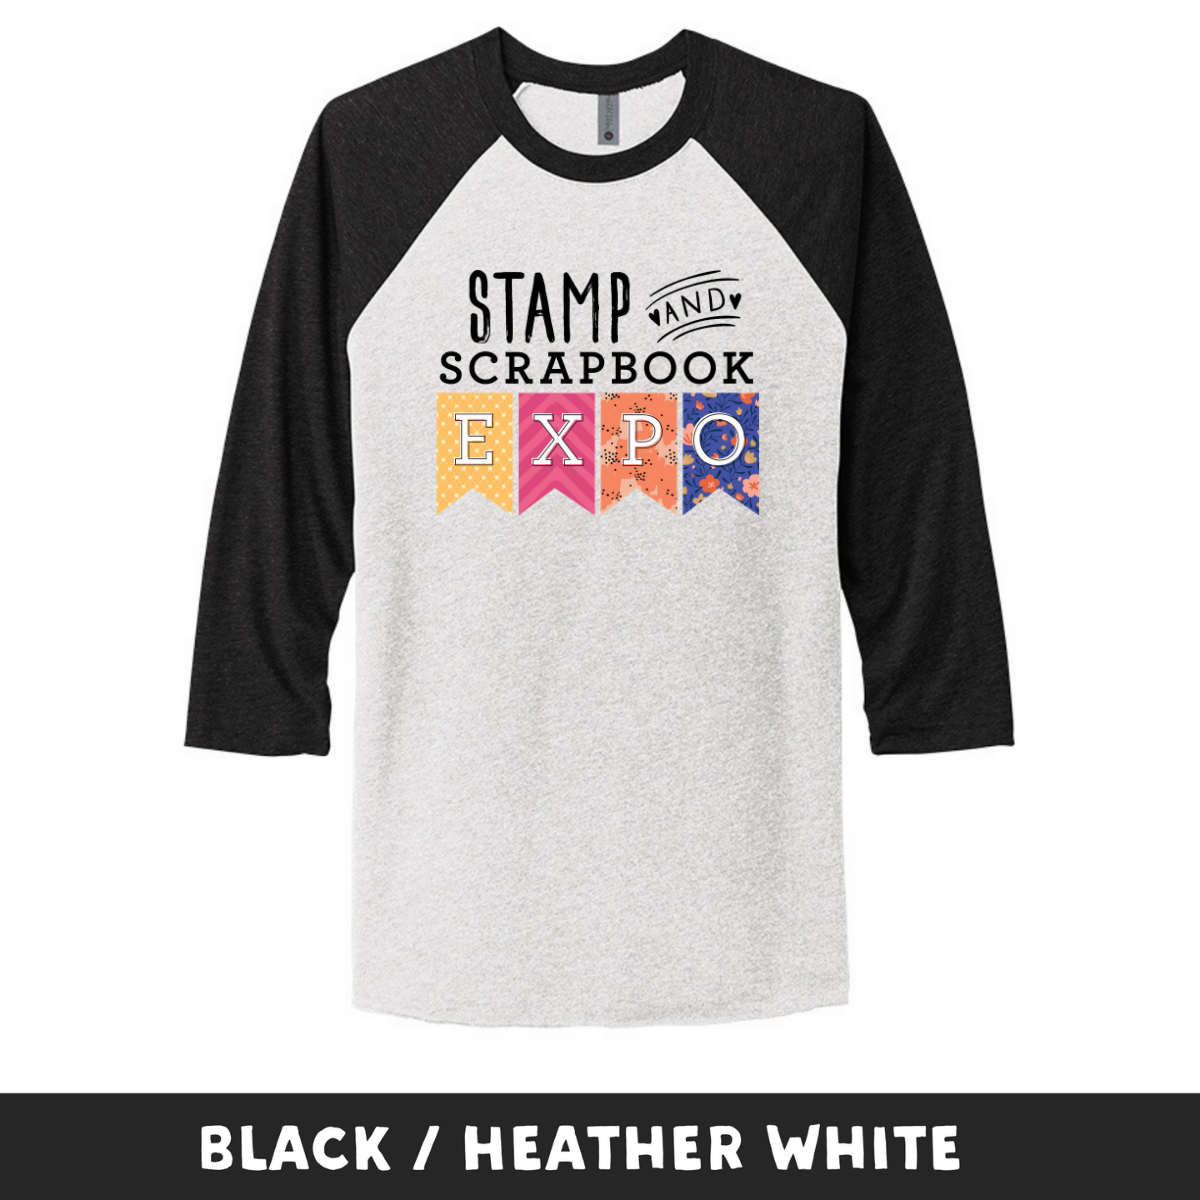 Black Heather White - Unisex Tri-Blend 3/4 Sleeve Raglan Tee - Stamp & Scrapbook Expo Color Logo